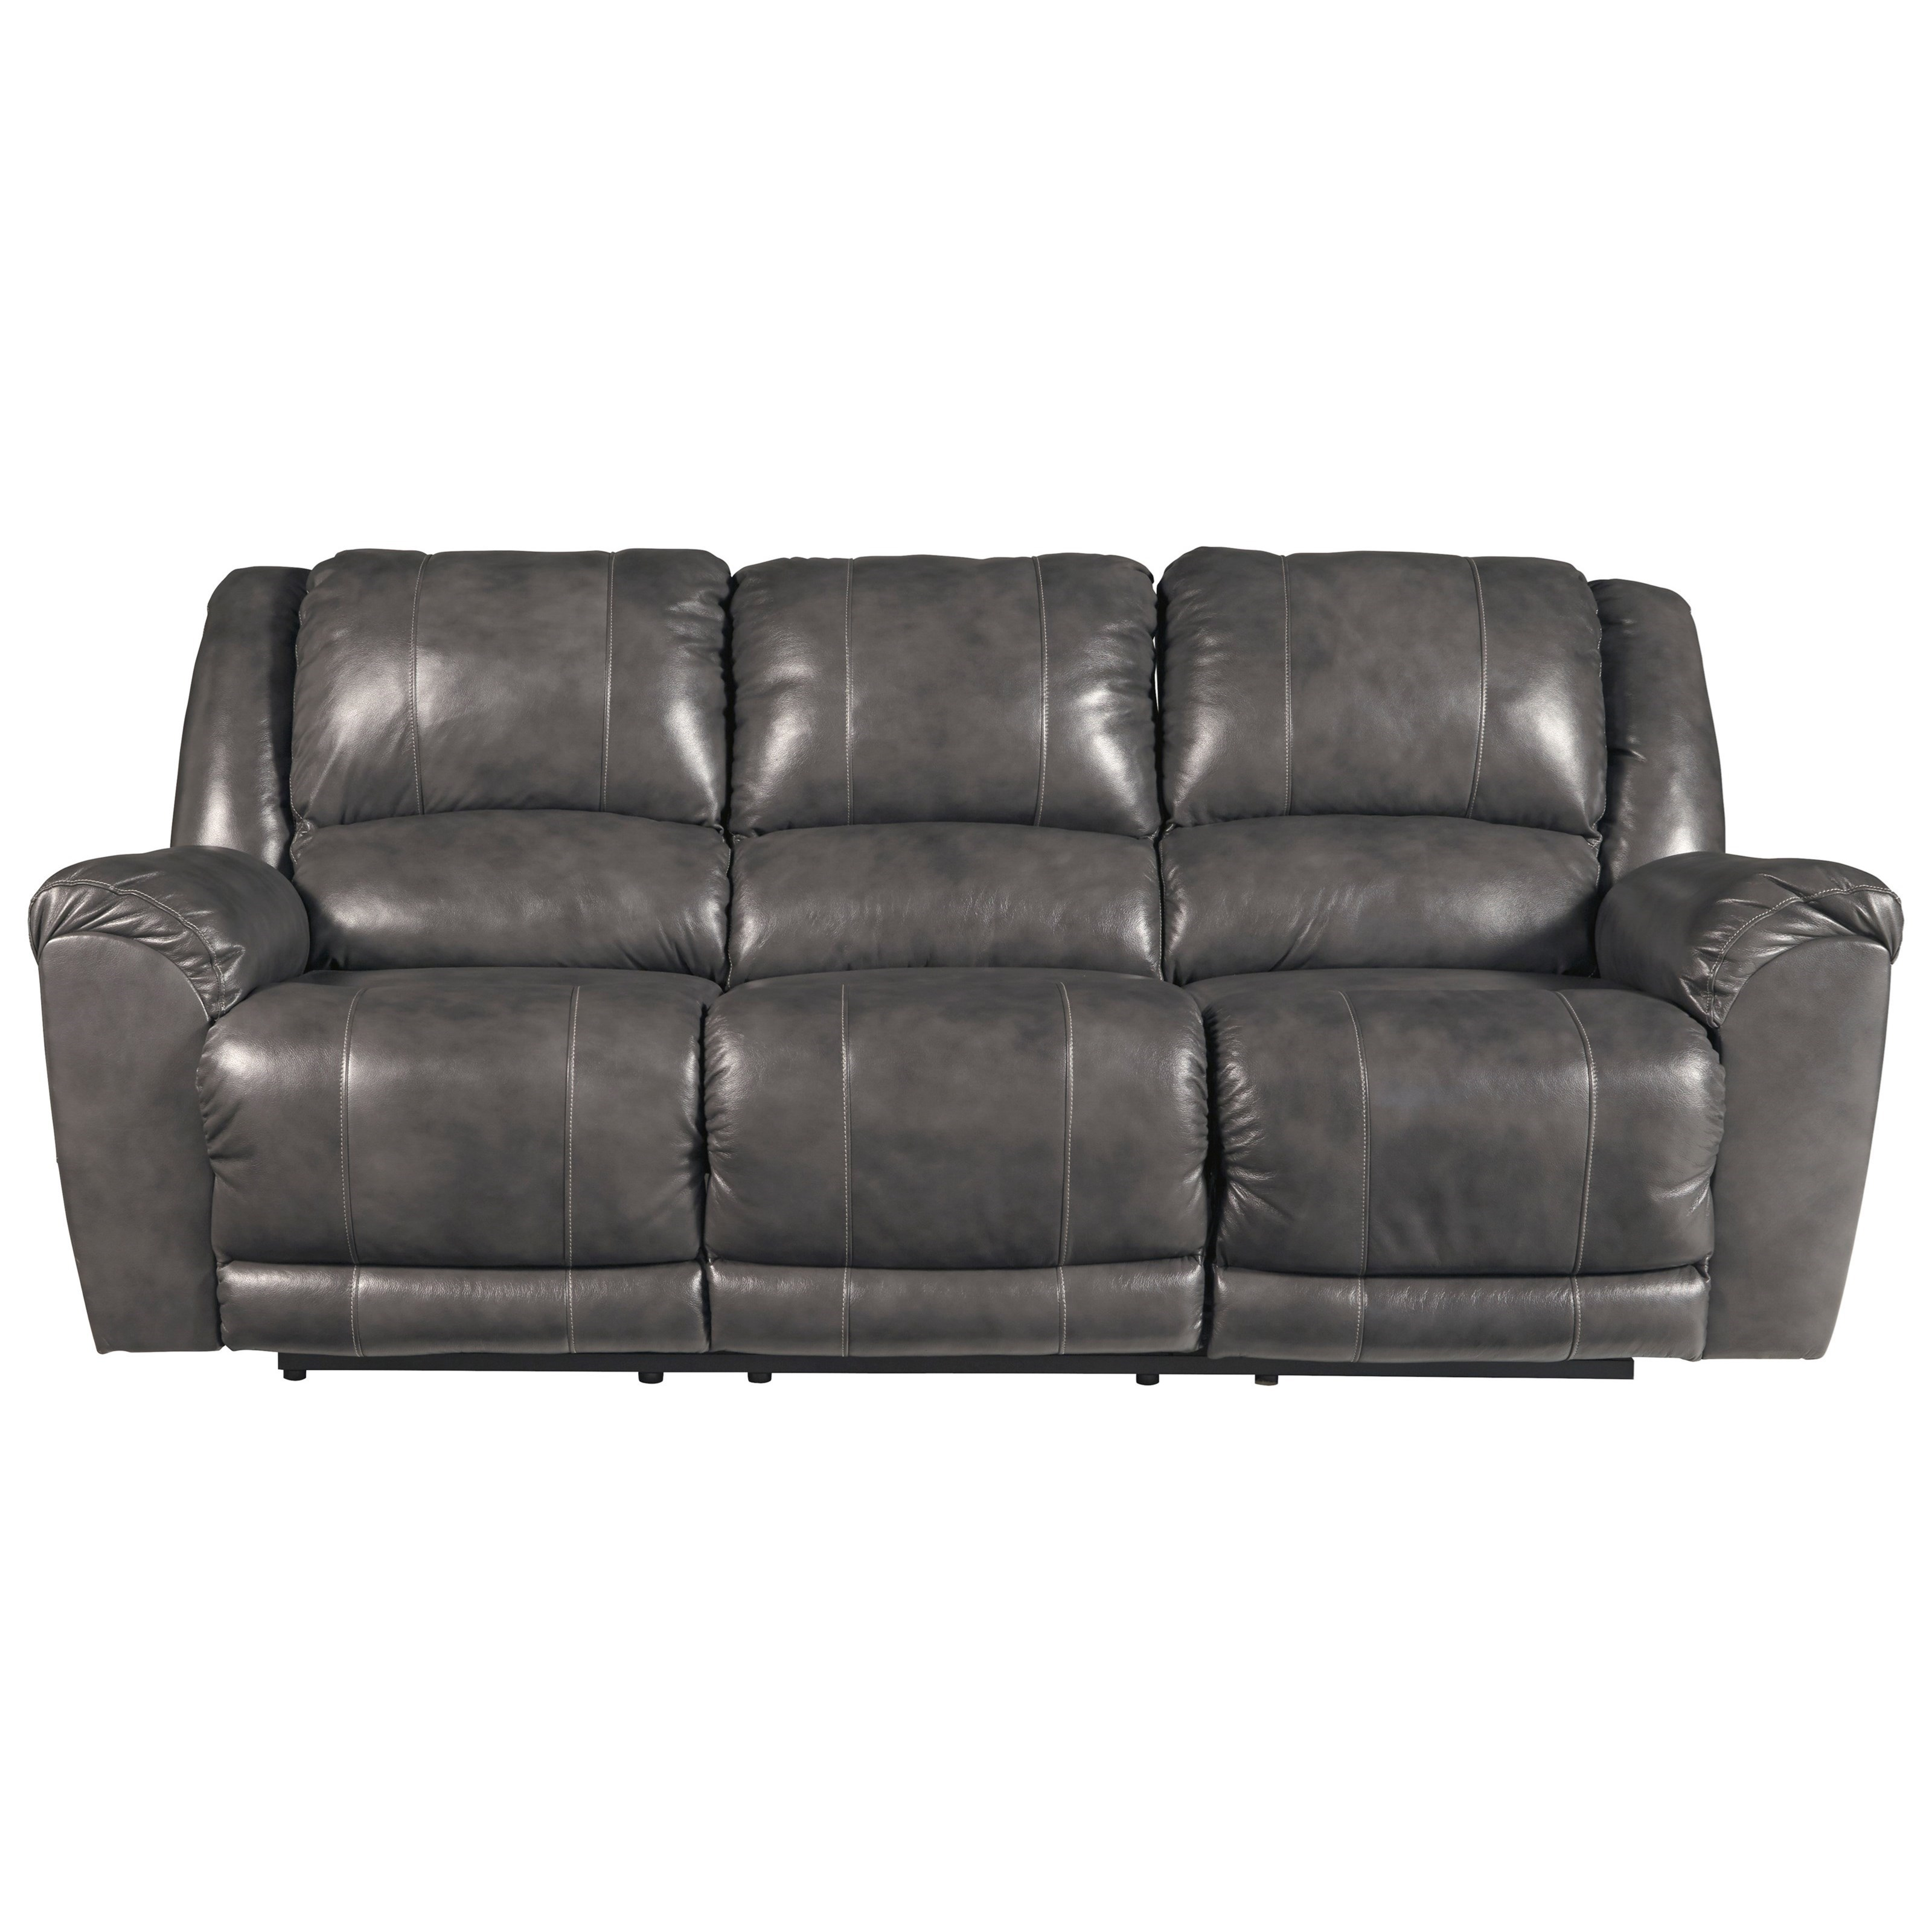 fandango leather match reclining sofa rotmans reclining sofas rh rotmans com jcpenney signature leather sofa freedom signature leather sofa